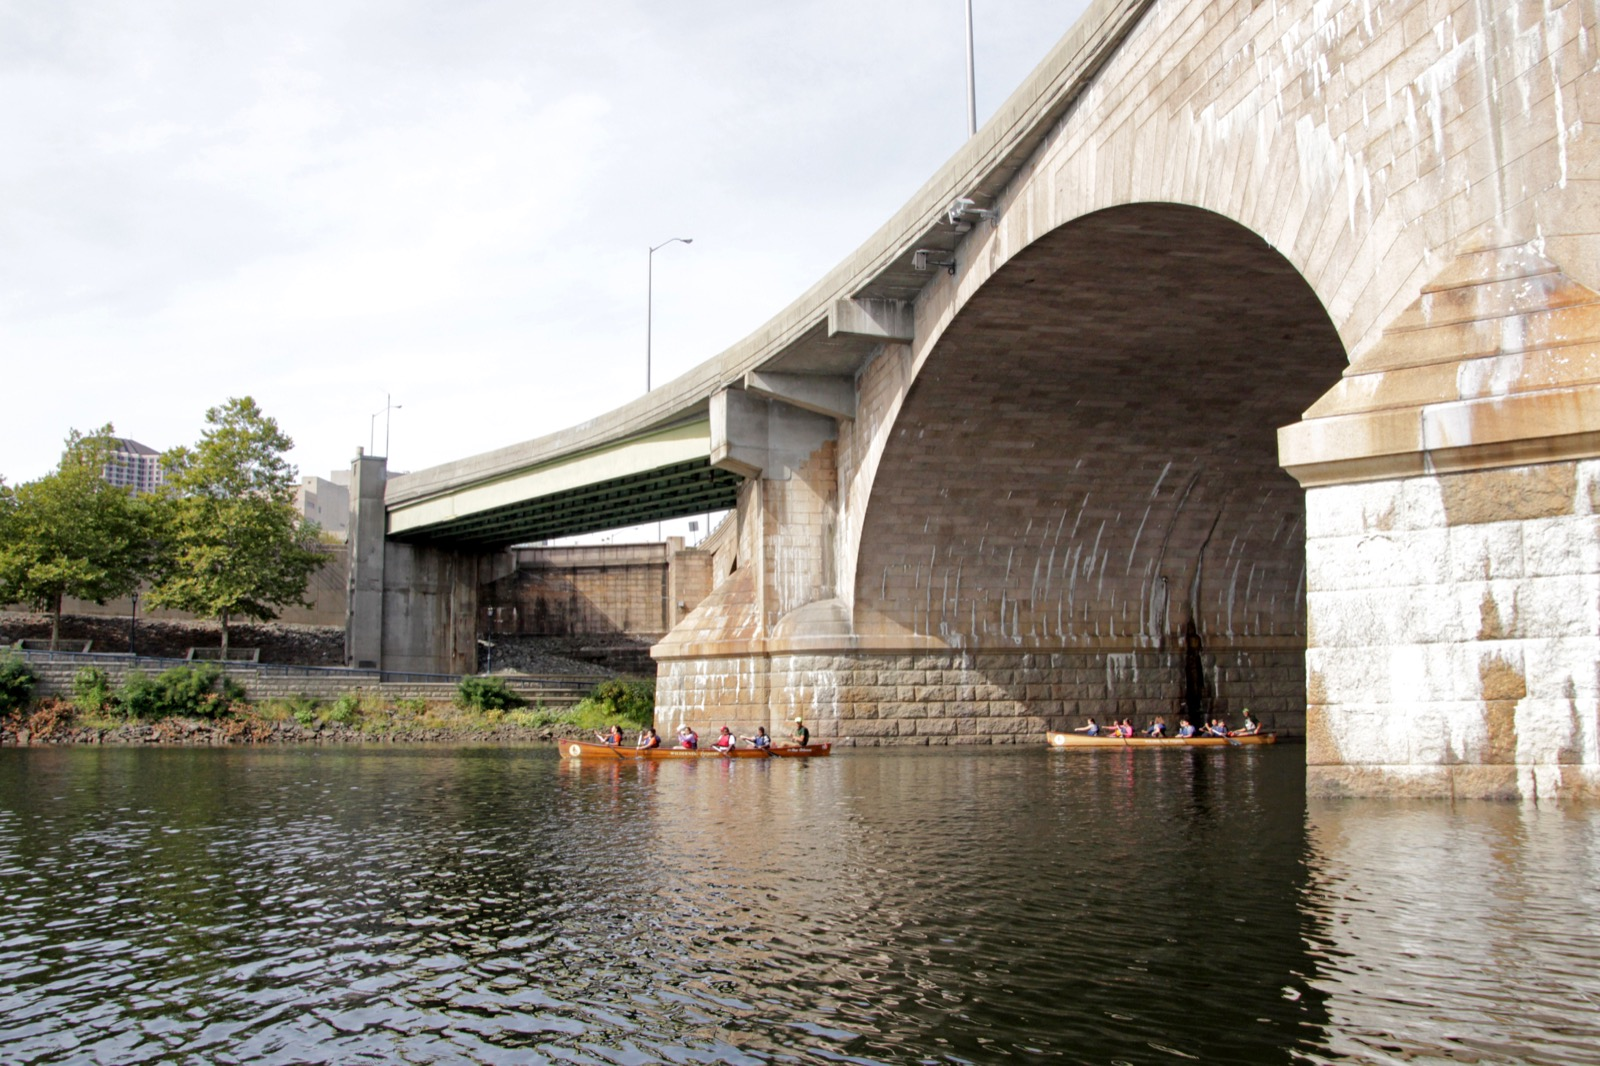 two voyageur canoes paddle underneath a large bridge in the distance